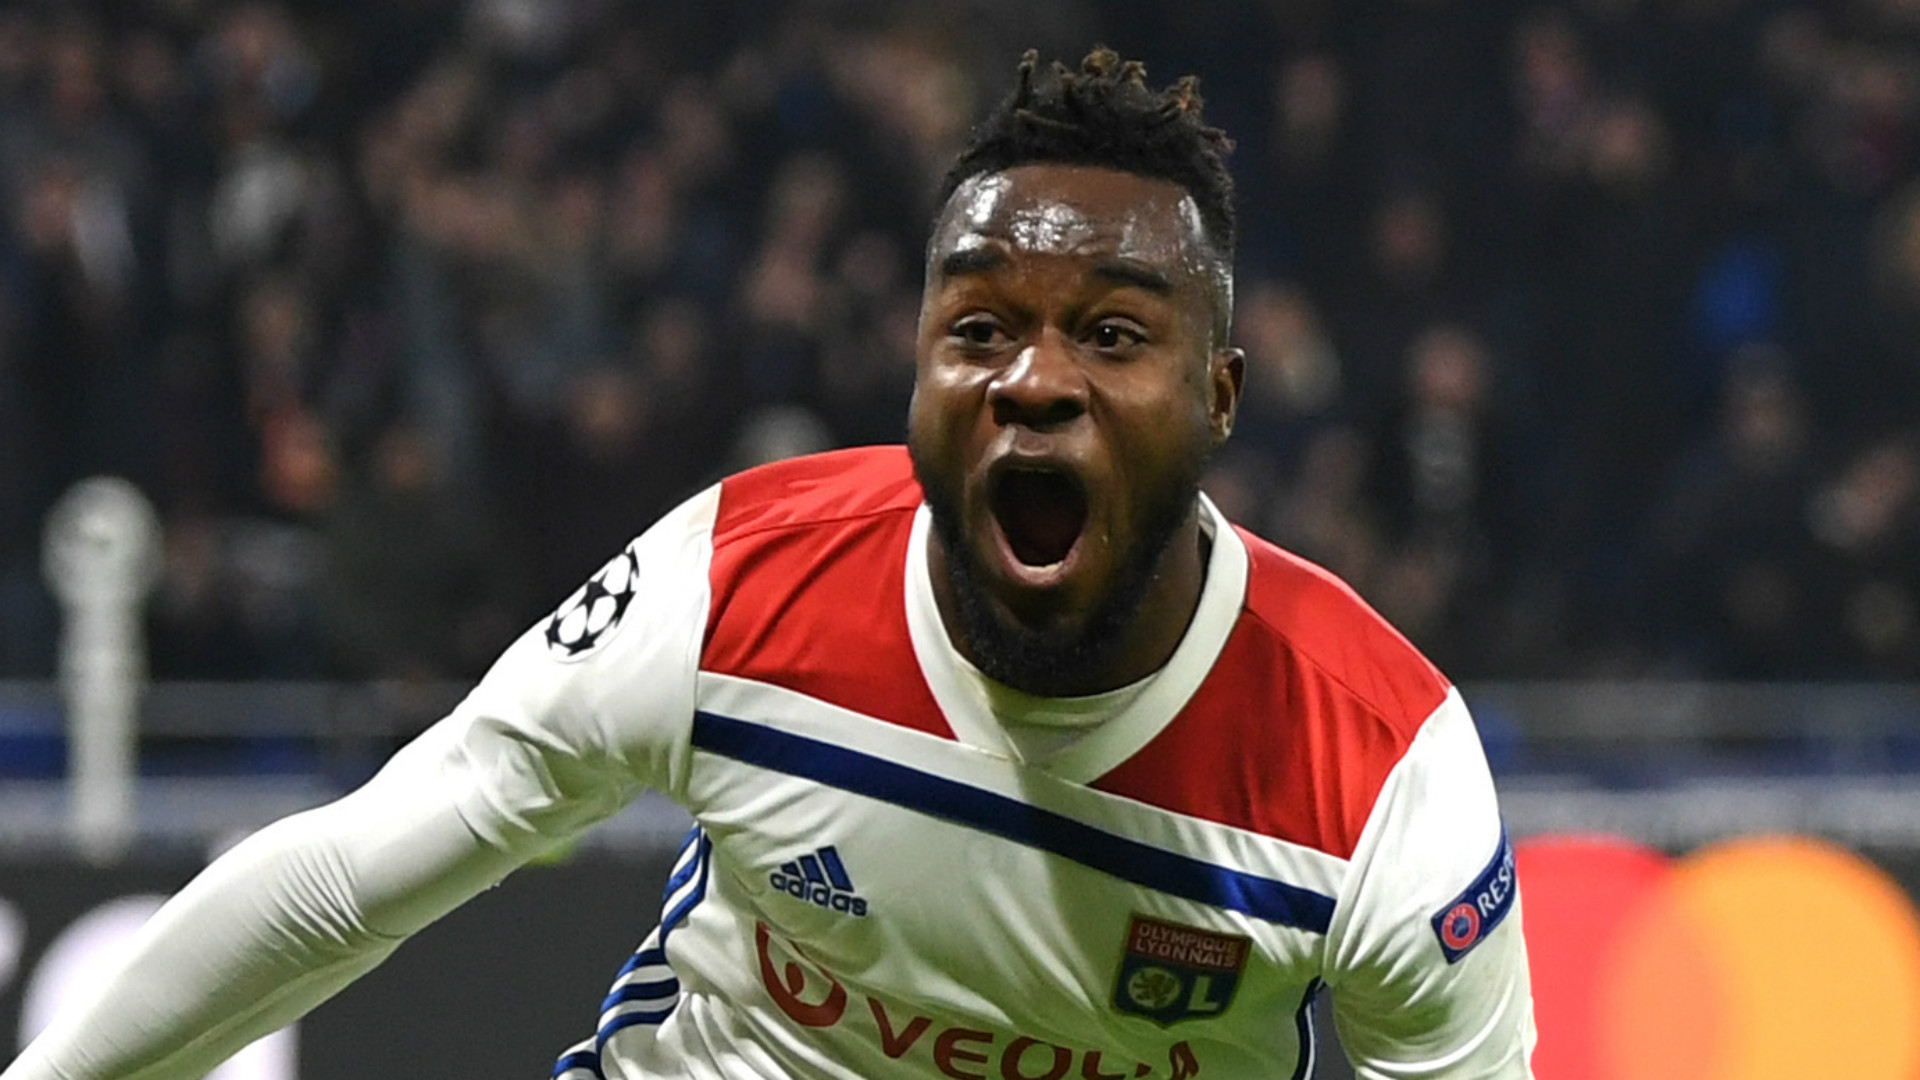 Cornet hopeful of Lyon Champions League progress ahead of Juventus